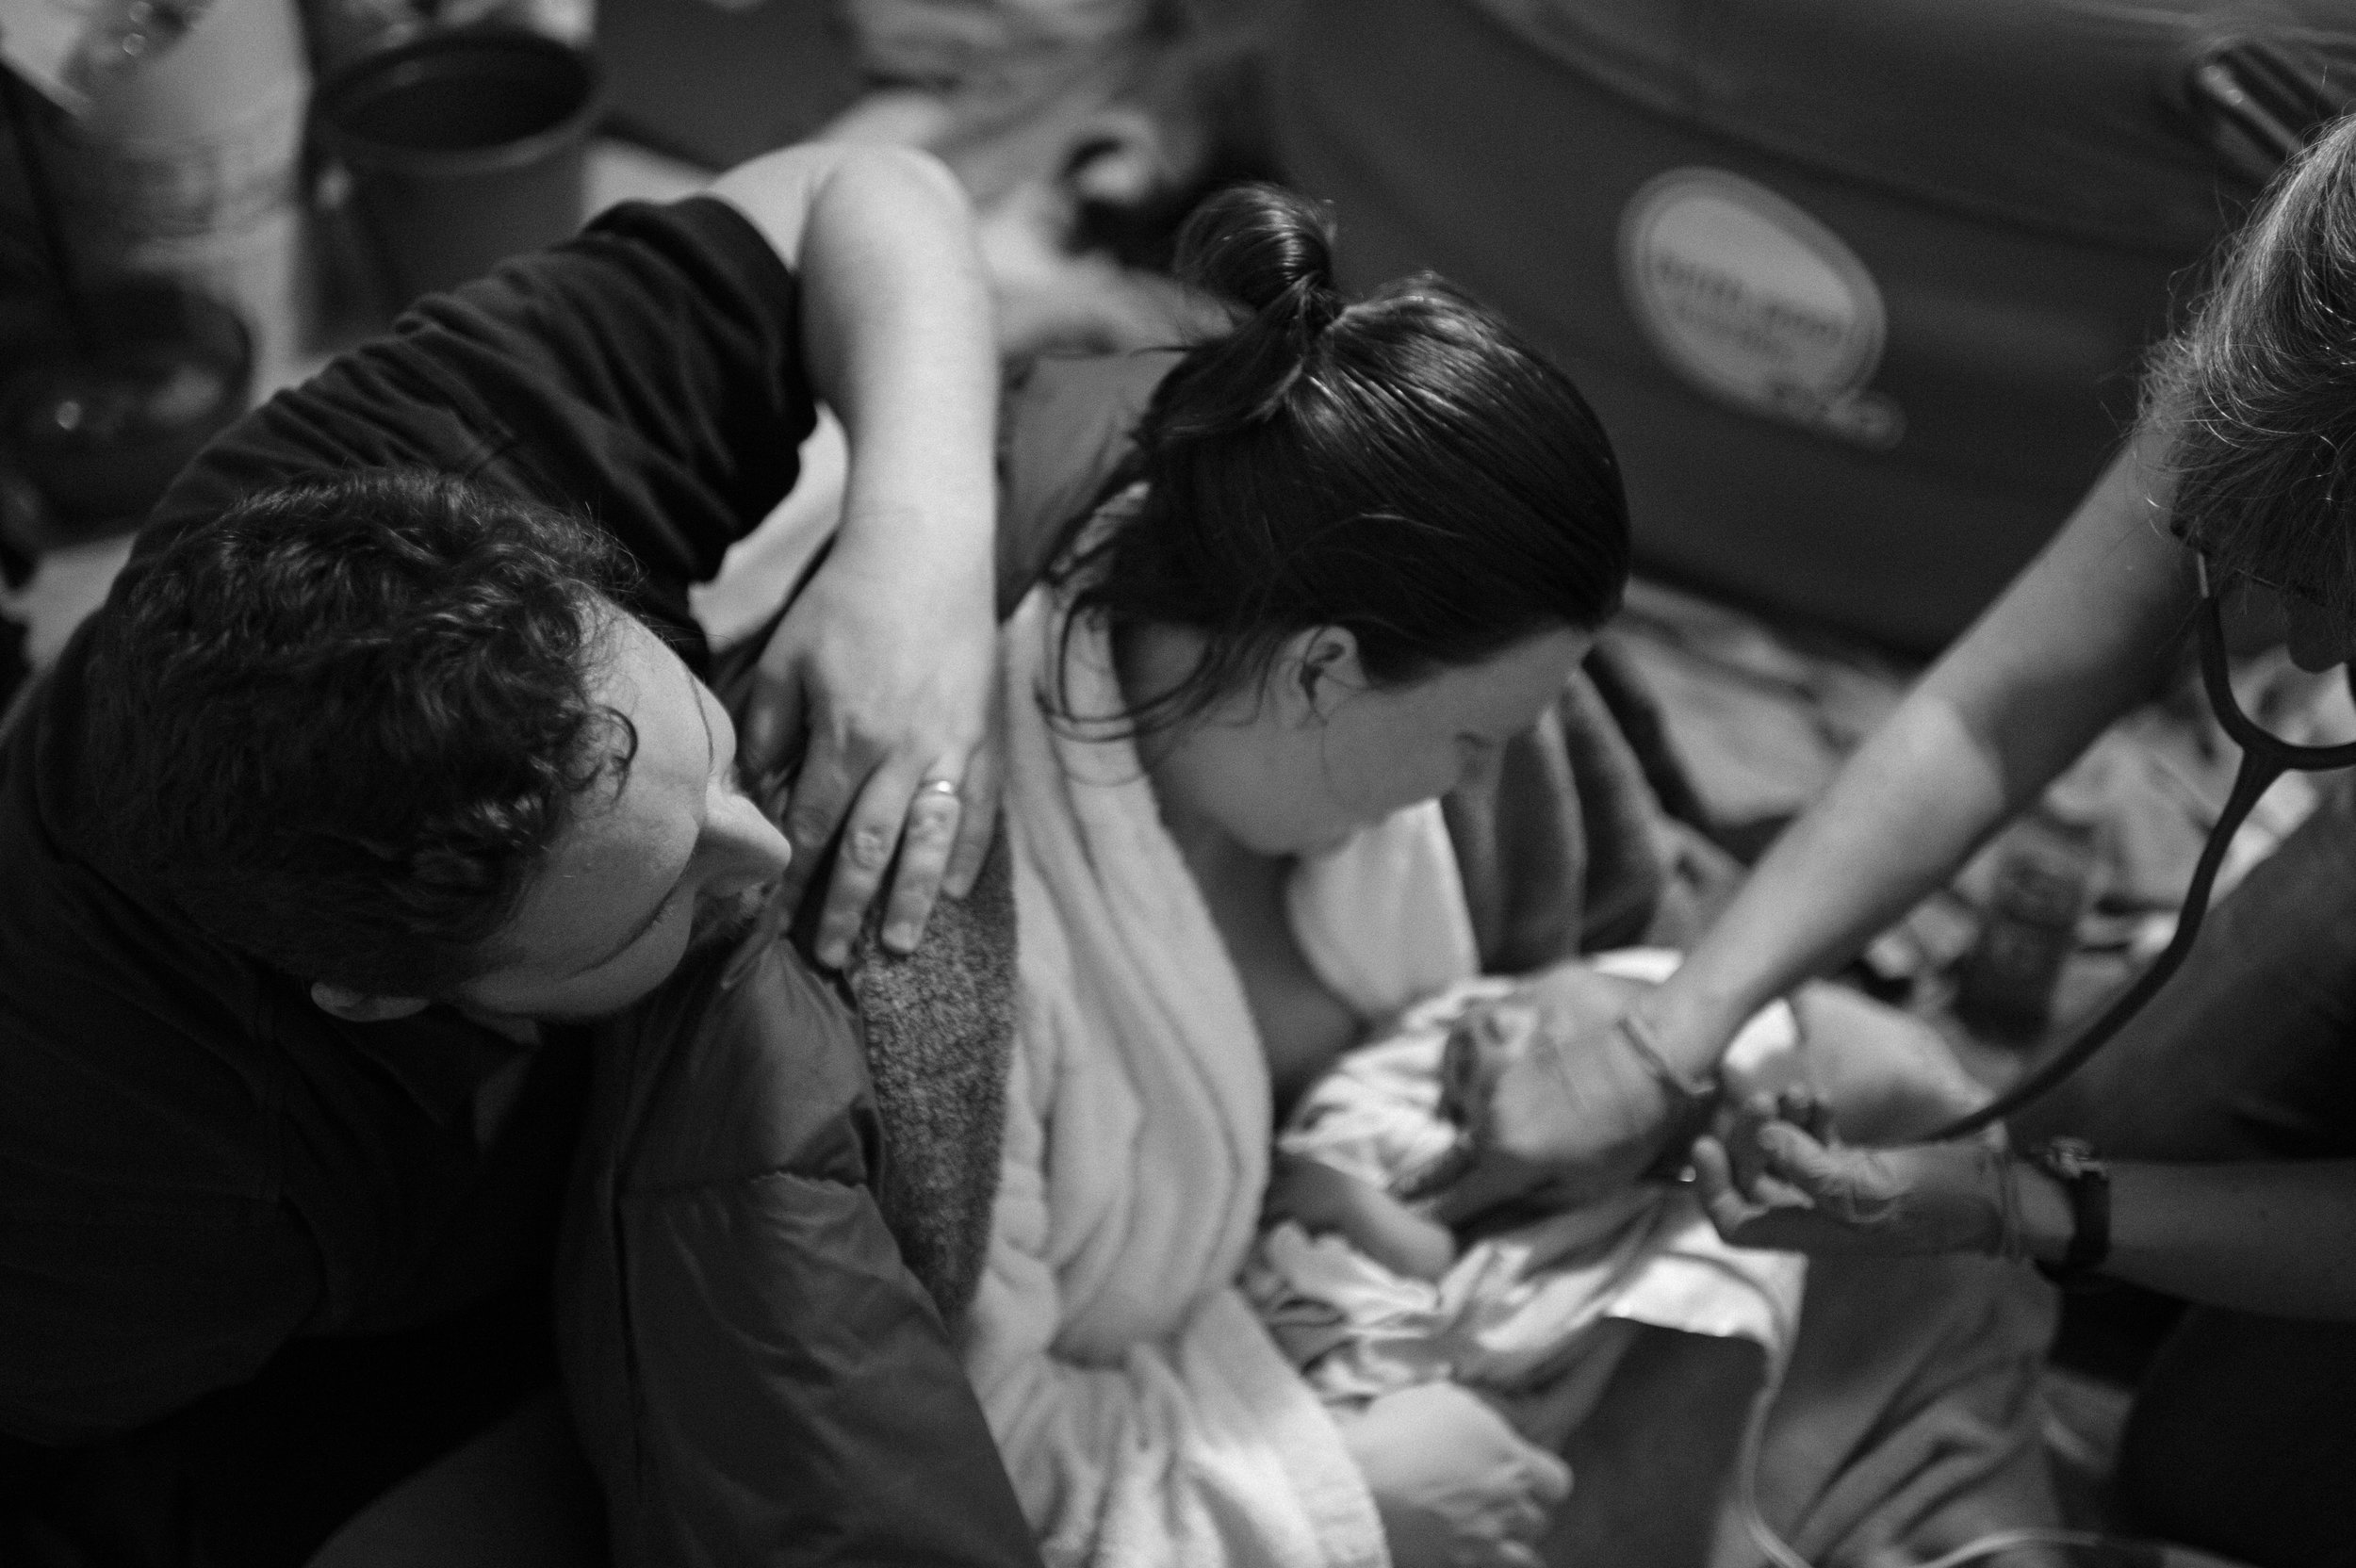 """As an experienced childbirth educator and birth doula, one of the things I consistently hear from the couples I work with is how they wished they had had more pictures (or any pictures!) taken during and directly after the birth of their baby. The birth of one's child is a day they will remember for the rest of their lives. My husband and I have used Isabel as our photographer for the birth of our son, and when I found out I was expecting again, Isabel was one of the first people I contacted since I knew I wanted her to document another birth for us. It was an absolute no brainer! I cherish these pictures. Labor is such a blur and whirlwind, and I loved being able to see the birth of my child from a different angle. All of my students and clients who've hired Isabel to photograph their births have been beyond thrilled with the quality of her work and her ability to """"fade into the background,"""" as one student put it, during the intimate moments of birth. I once showed a slideshow of Isabel's birth photos to a class of mine and there wasn't a single dry eye in the room. If you're on the fence about having your birth documented, don't be! You can only give birth to this baby once!"""